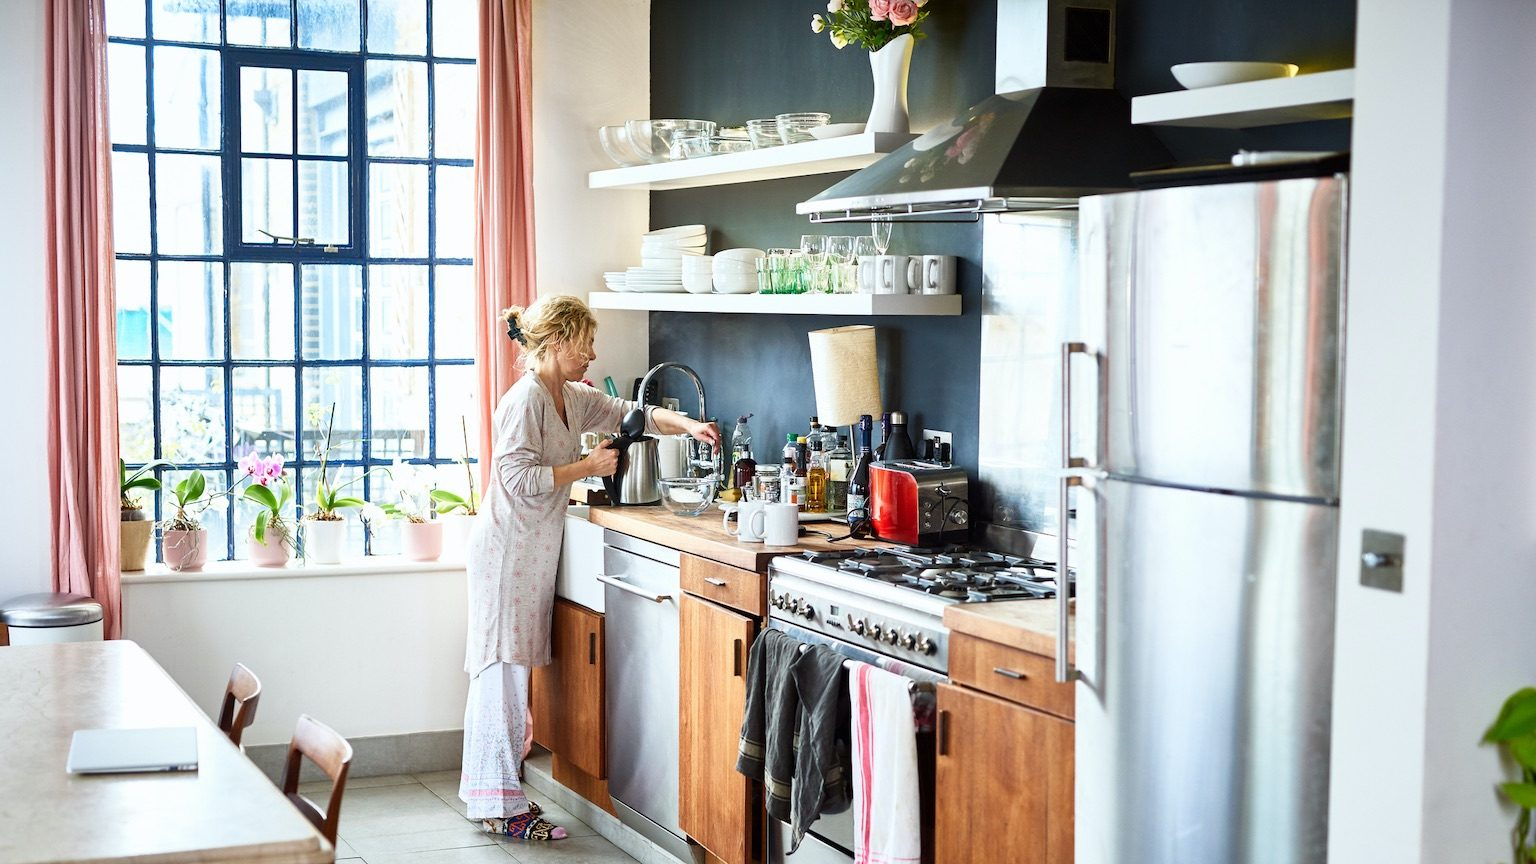 Woman wearing pyjamas making tea on weekend, relaxation, morning routine, domestic life